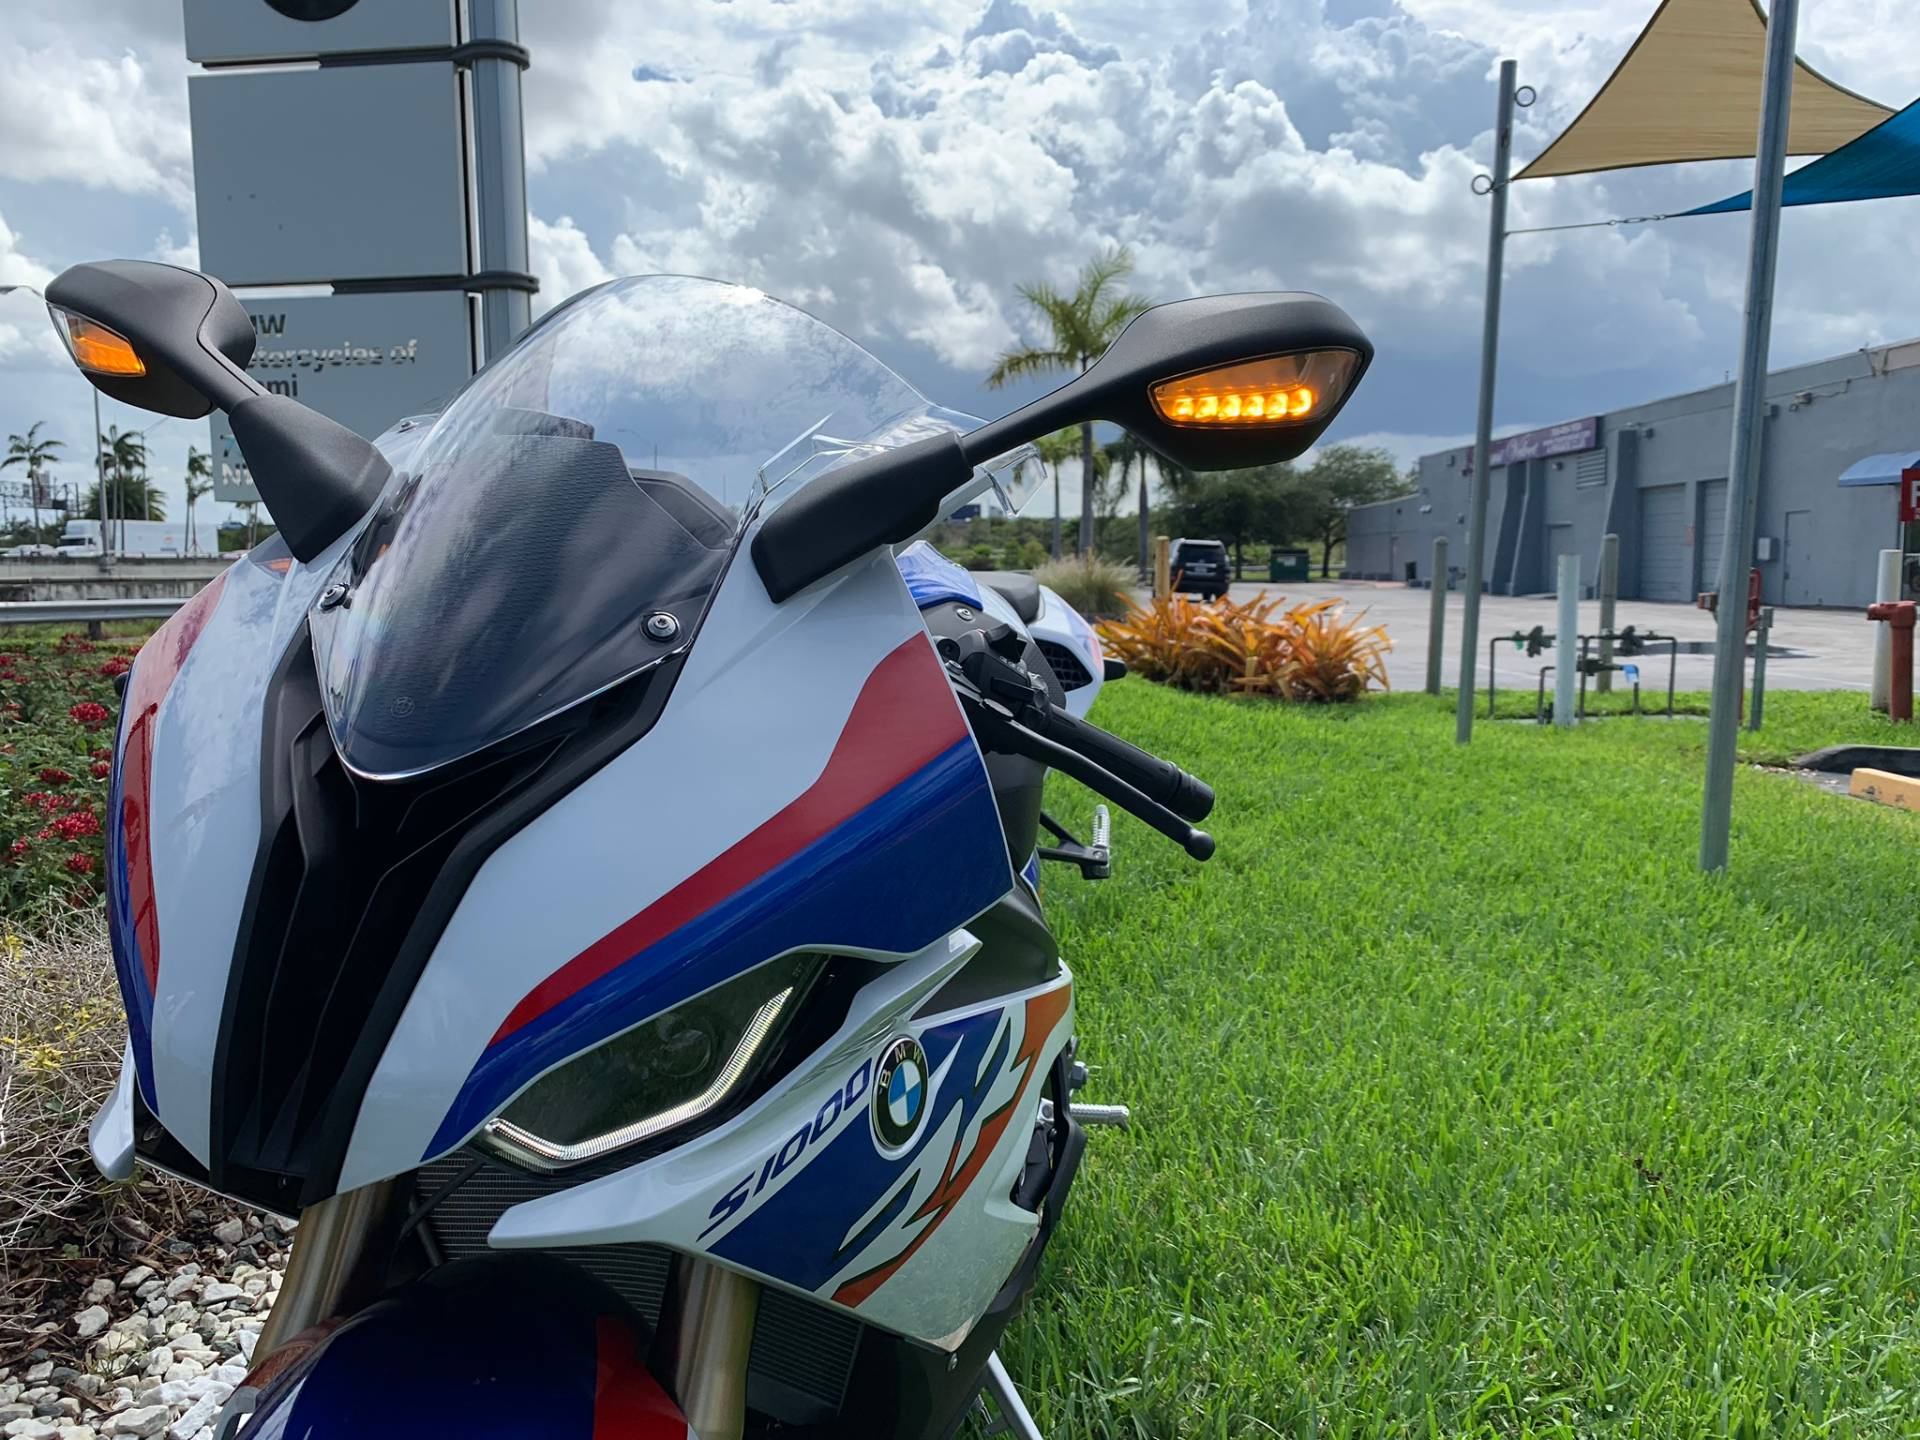 New 2020 BMW S 1000 RR for sale, BMW S 1000RR for sale, BMW Motorcycle S1000RR, new BMW RR, Sport. BMW Motorcycles of Miami, Motorcycles of Miami, Motorcycles Miami, New Motorcycles, Used Motorcycles, pre-owned. #BMWMotorcyclesOfMiami #MotorcyclesOfMiami #MotorcyclesMiami - Photo 15